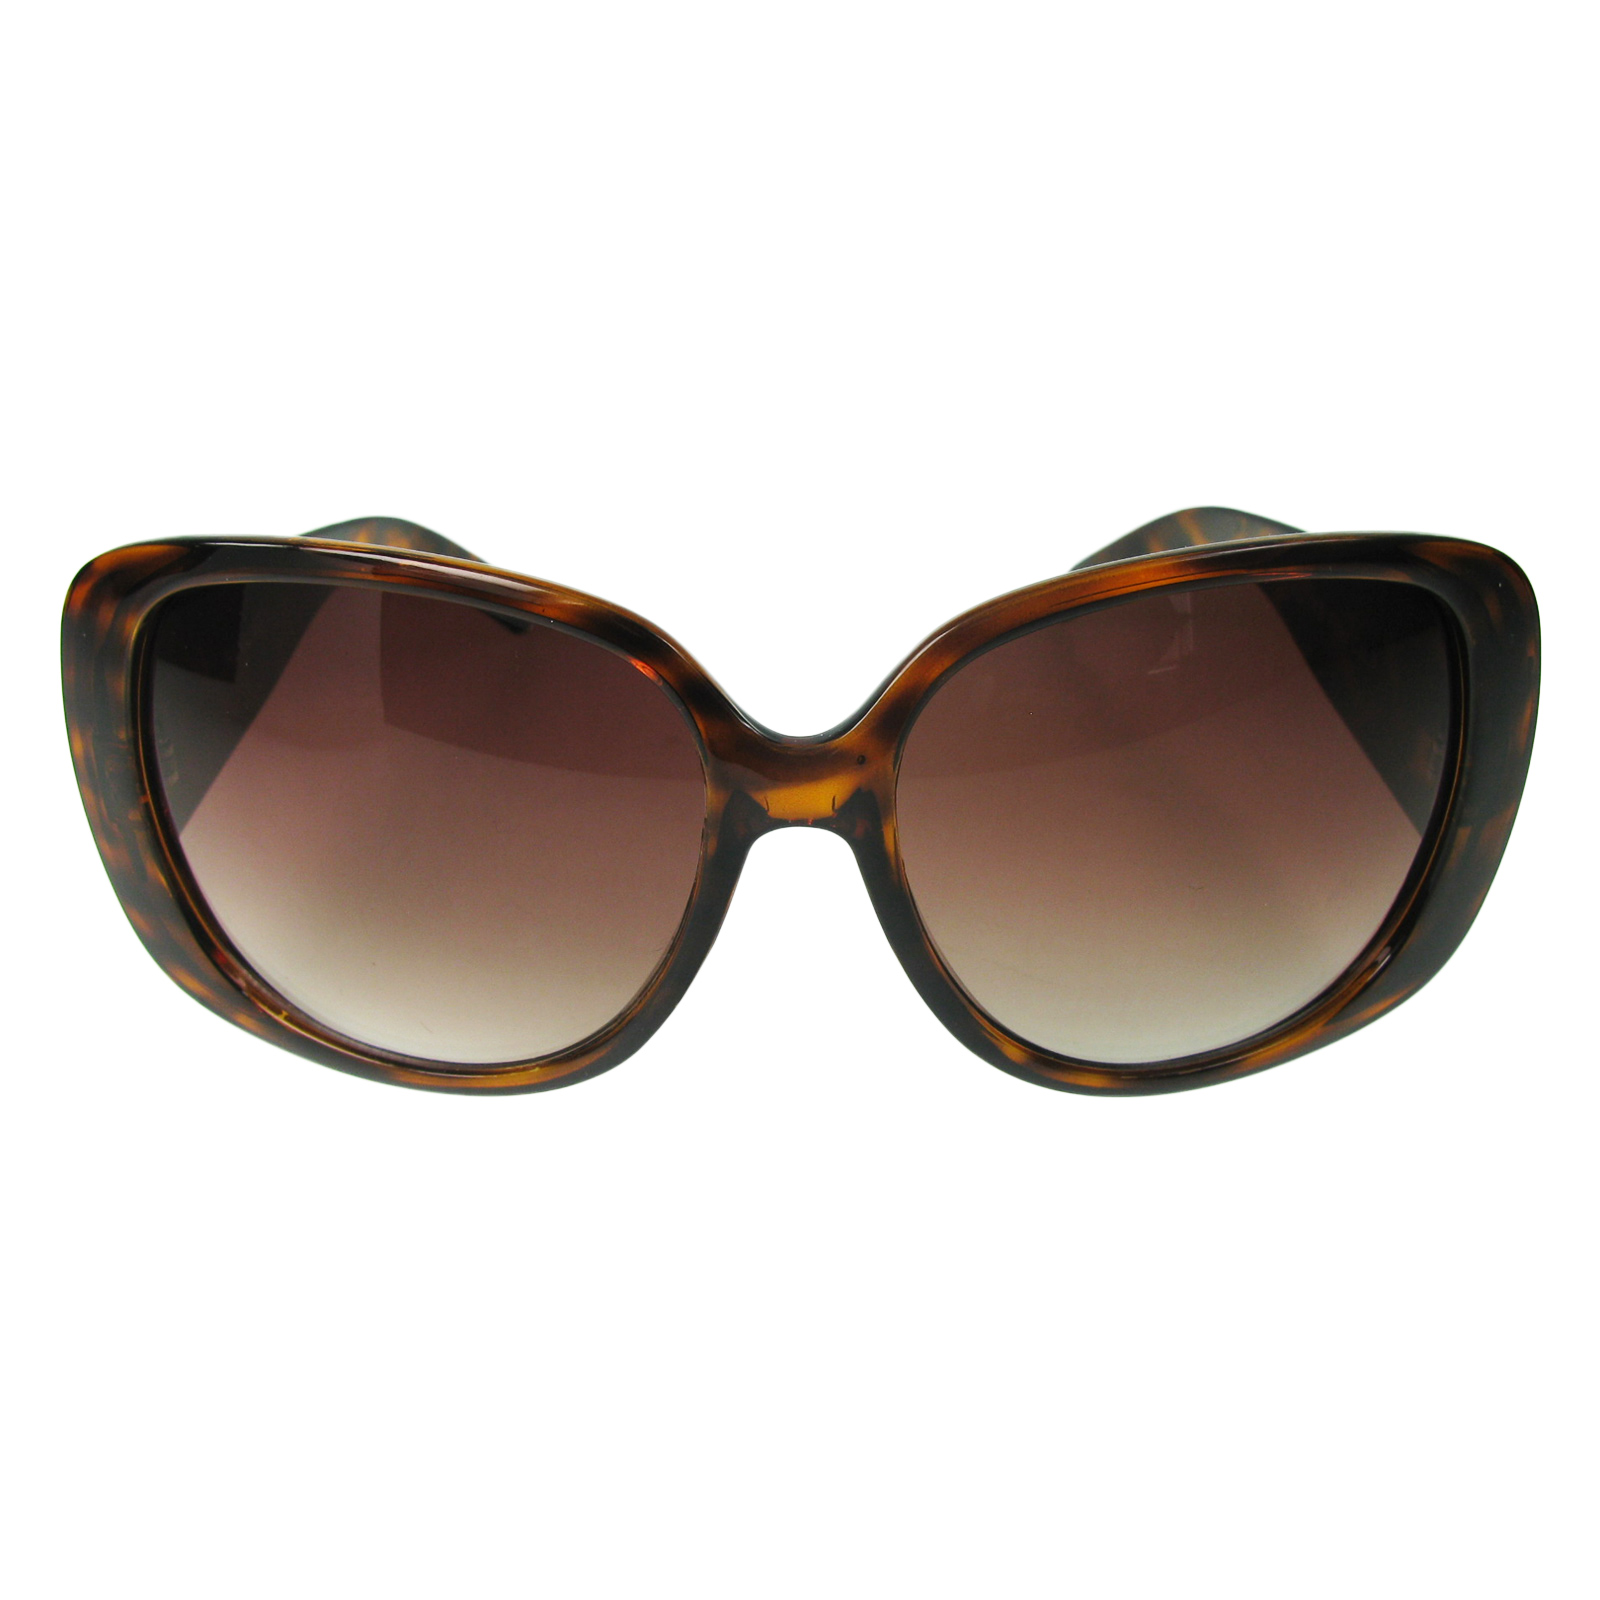 Made In The Shades - %color %size Sunglasses for Women